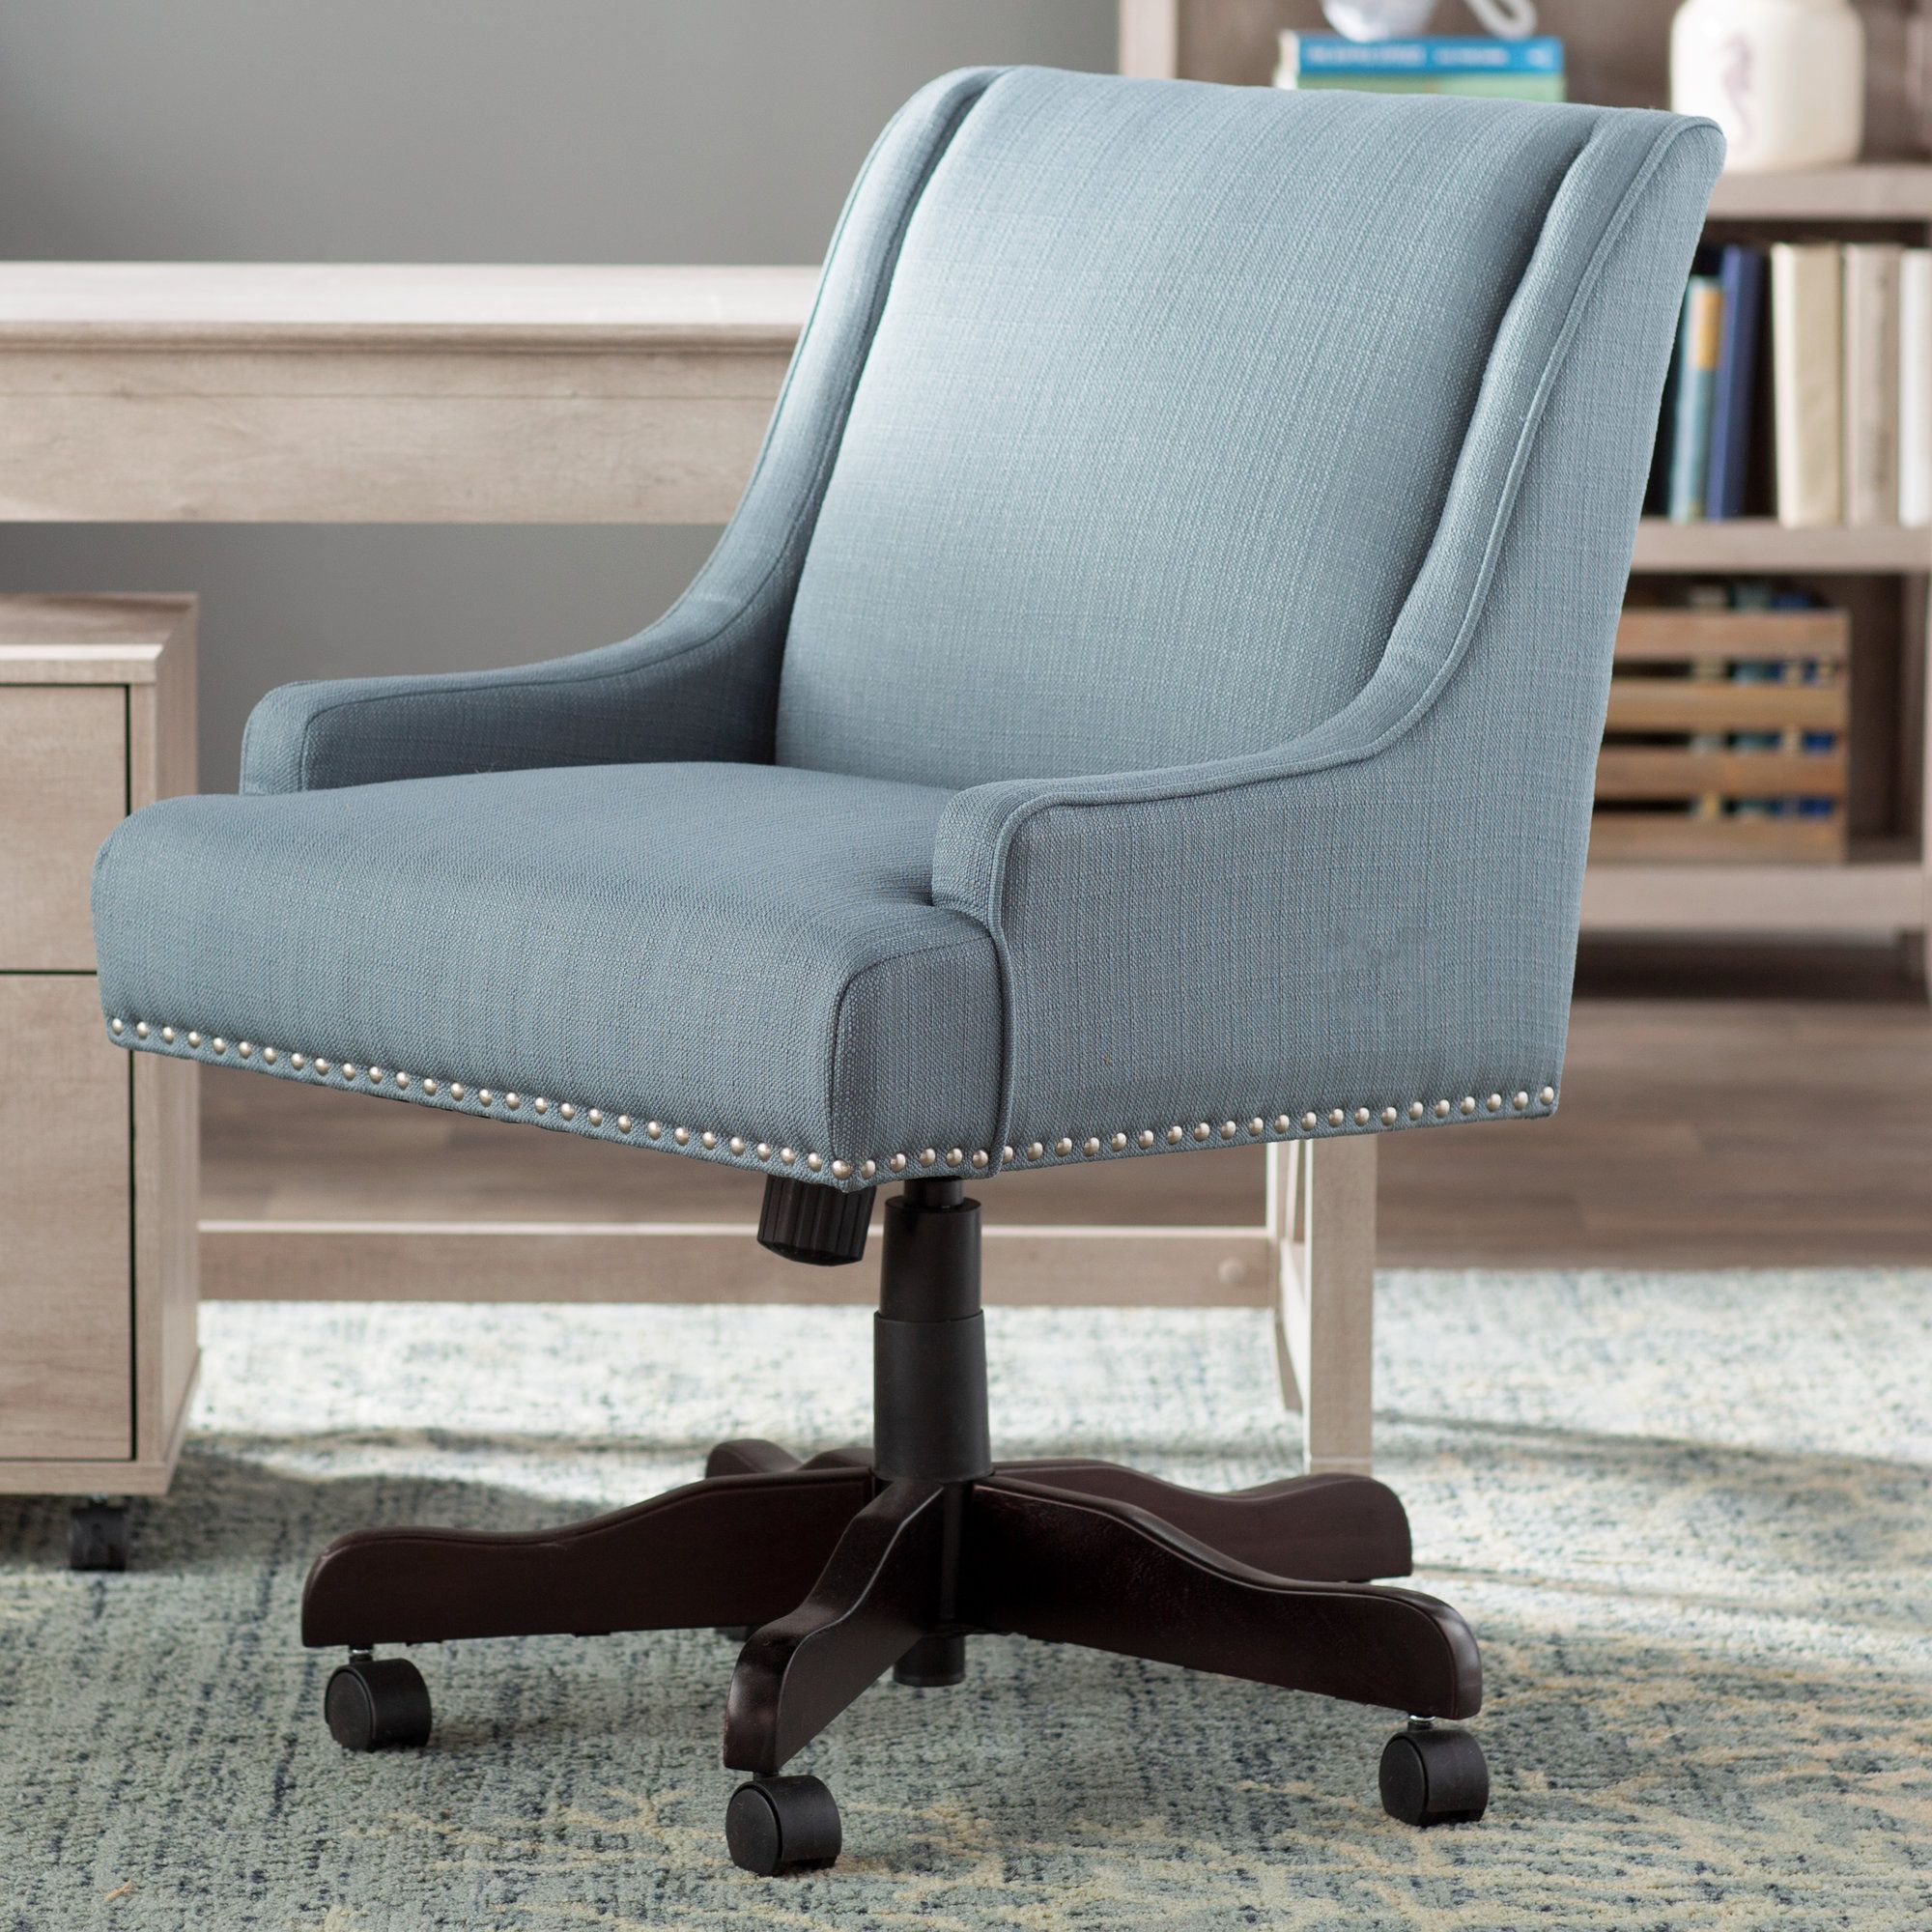 Traditional Office Chairs, Cheap